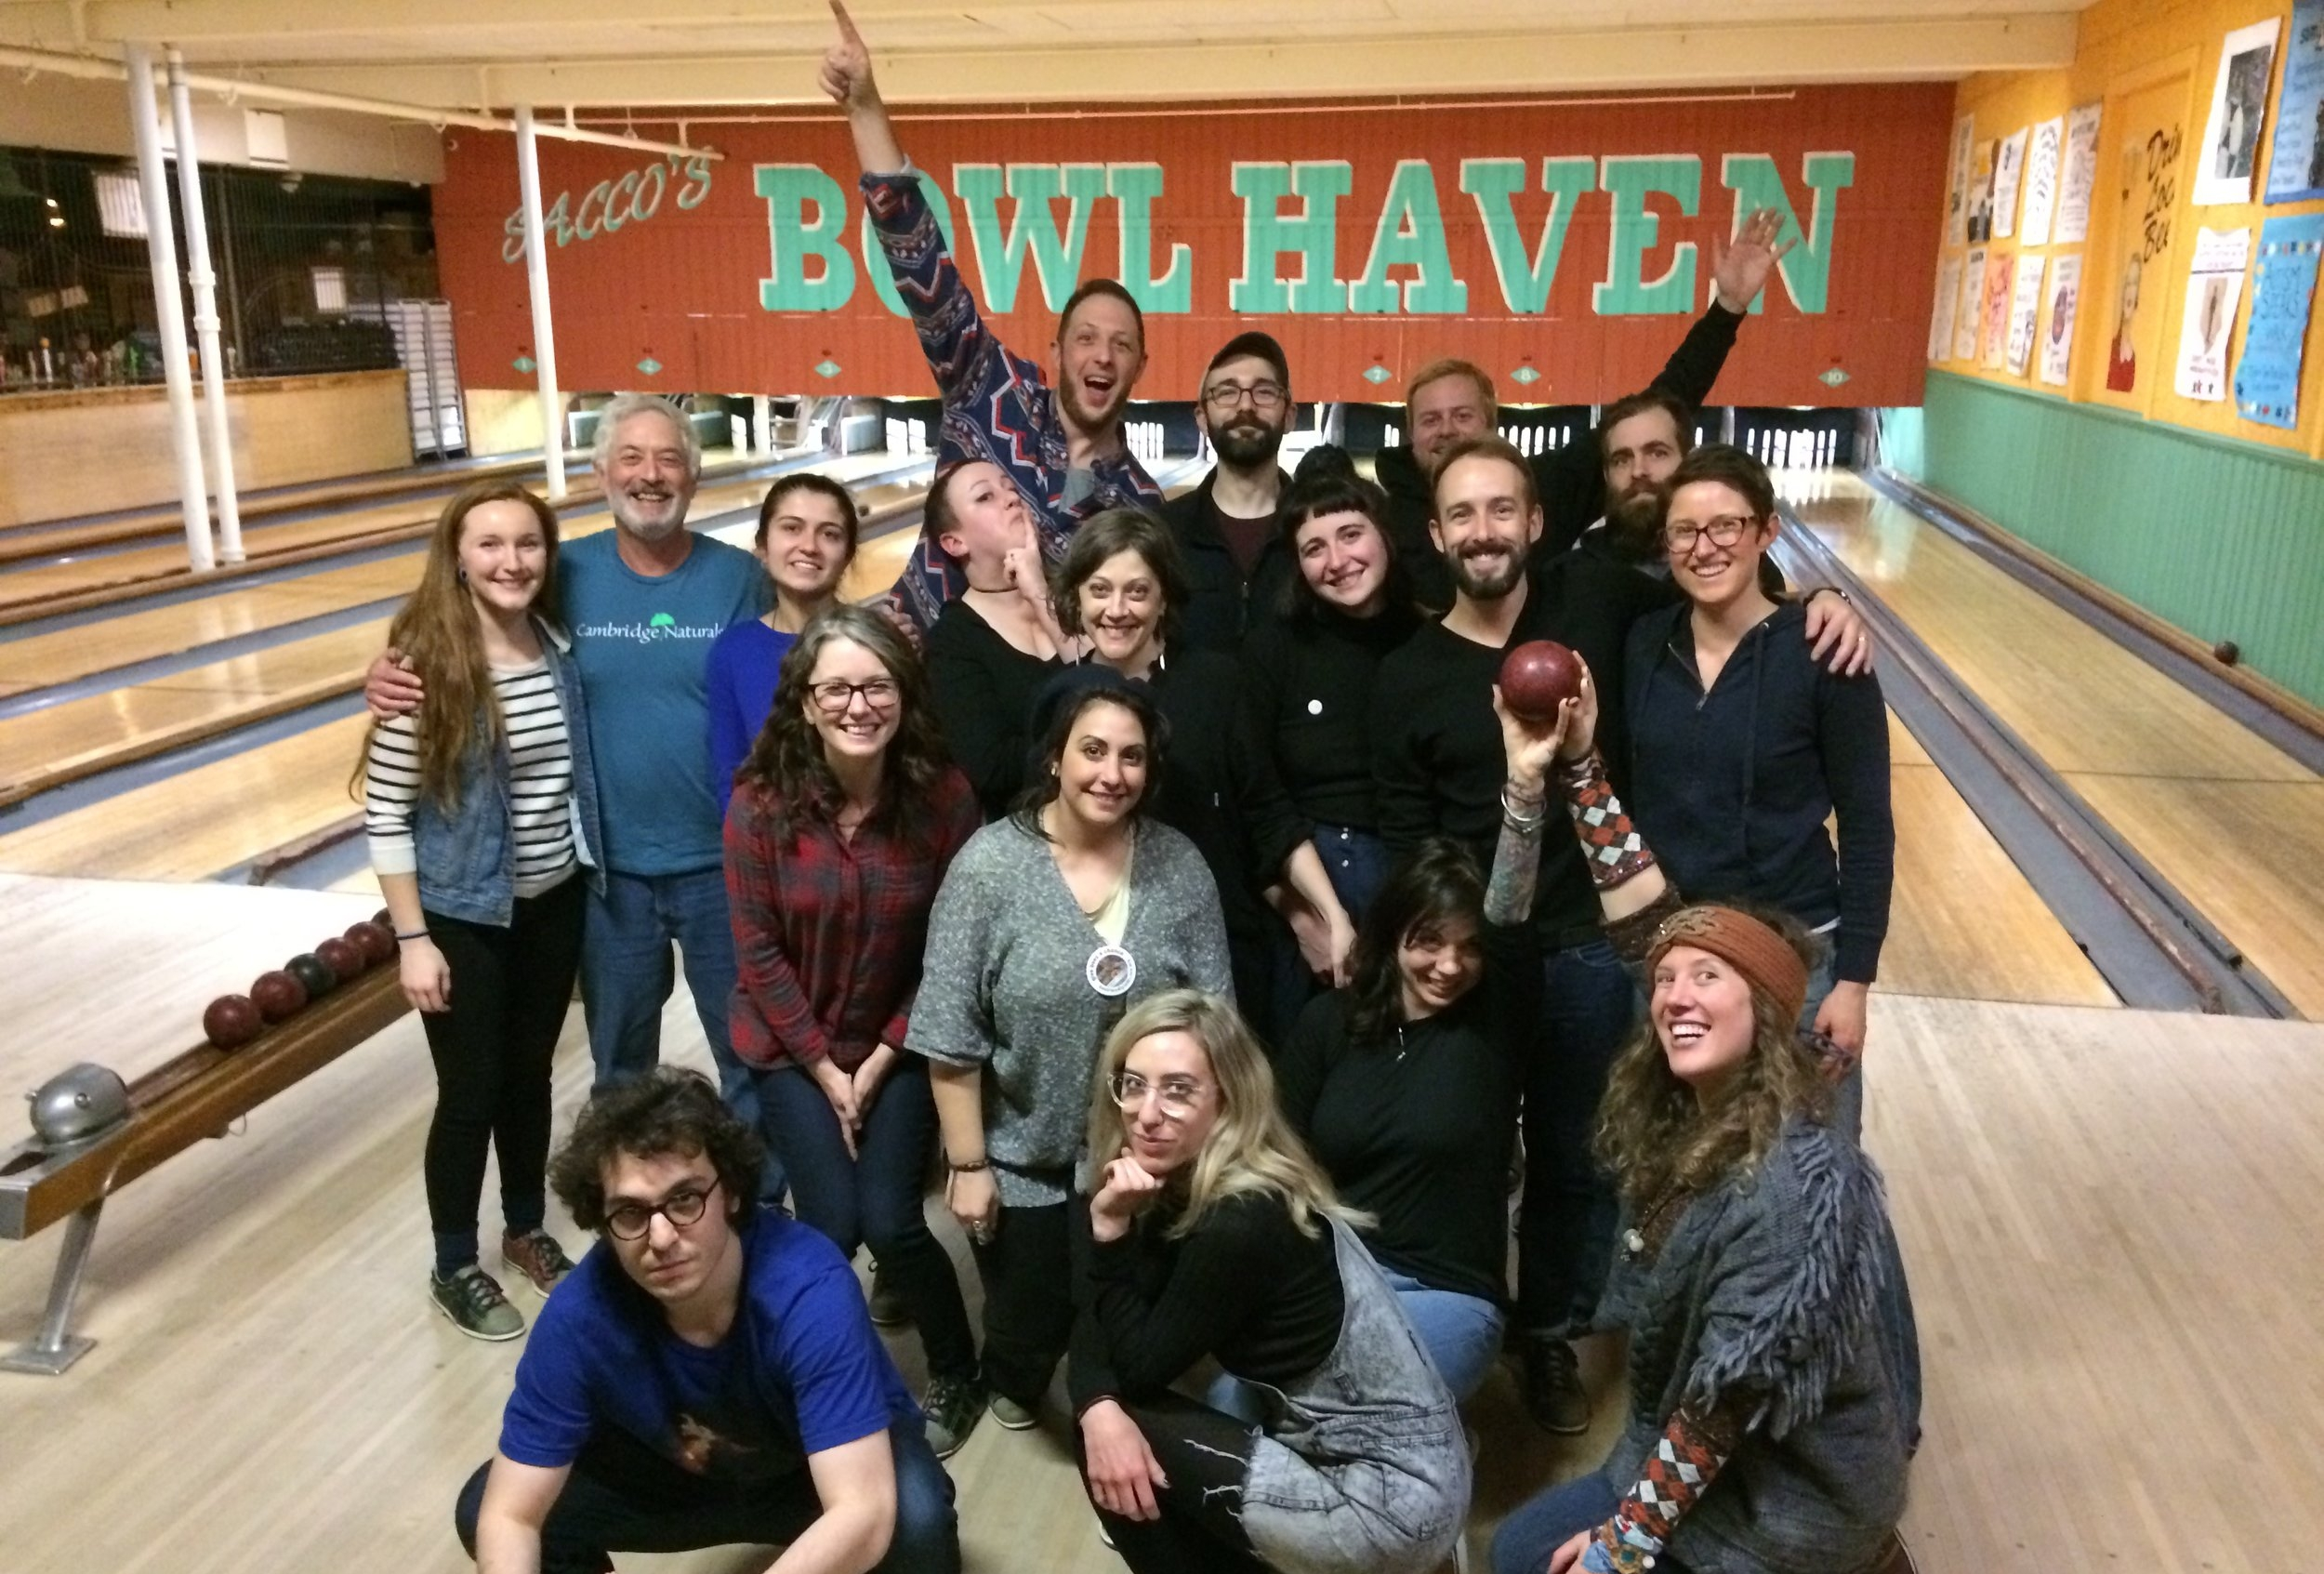 Some of our hilarious and hardworking team at our annual holiday bowling party